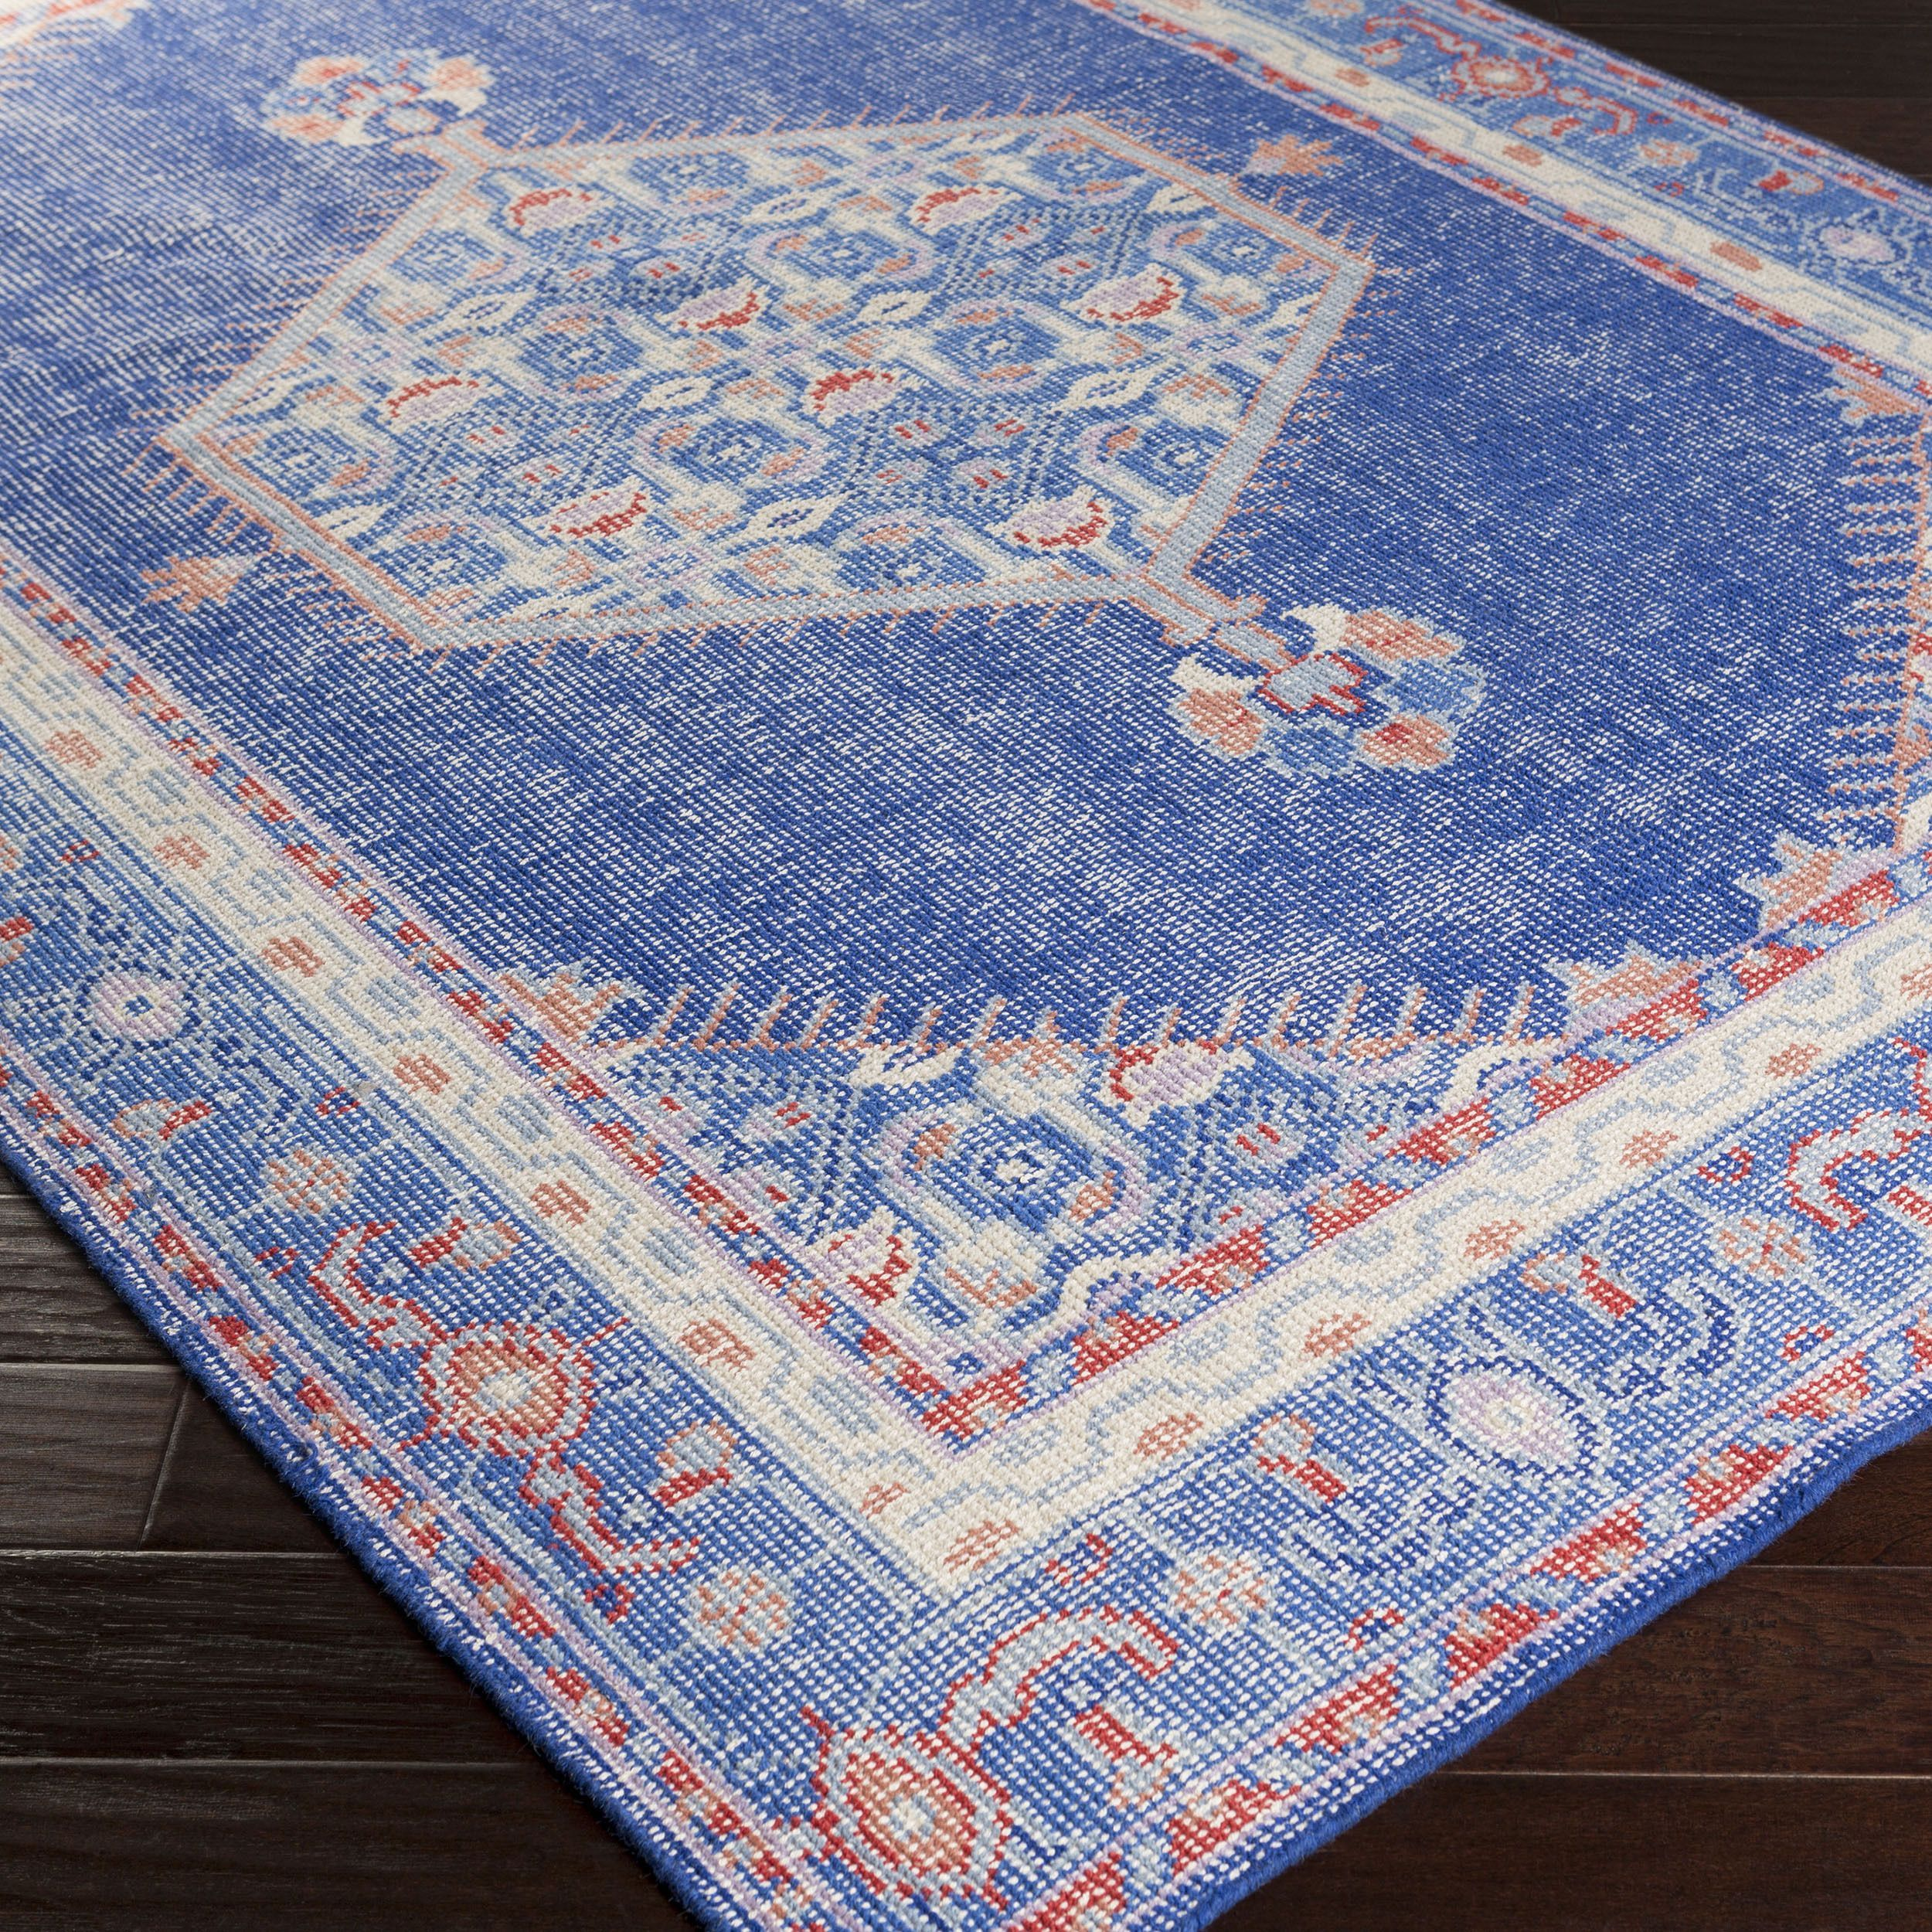 Hand Knotted Traditional Wool Rug 8 X 11 Blue 8 X 11 Blue